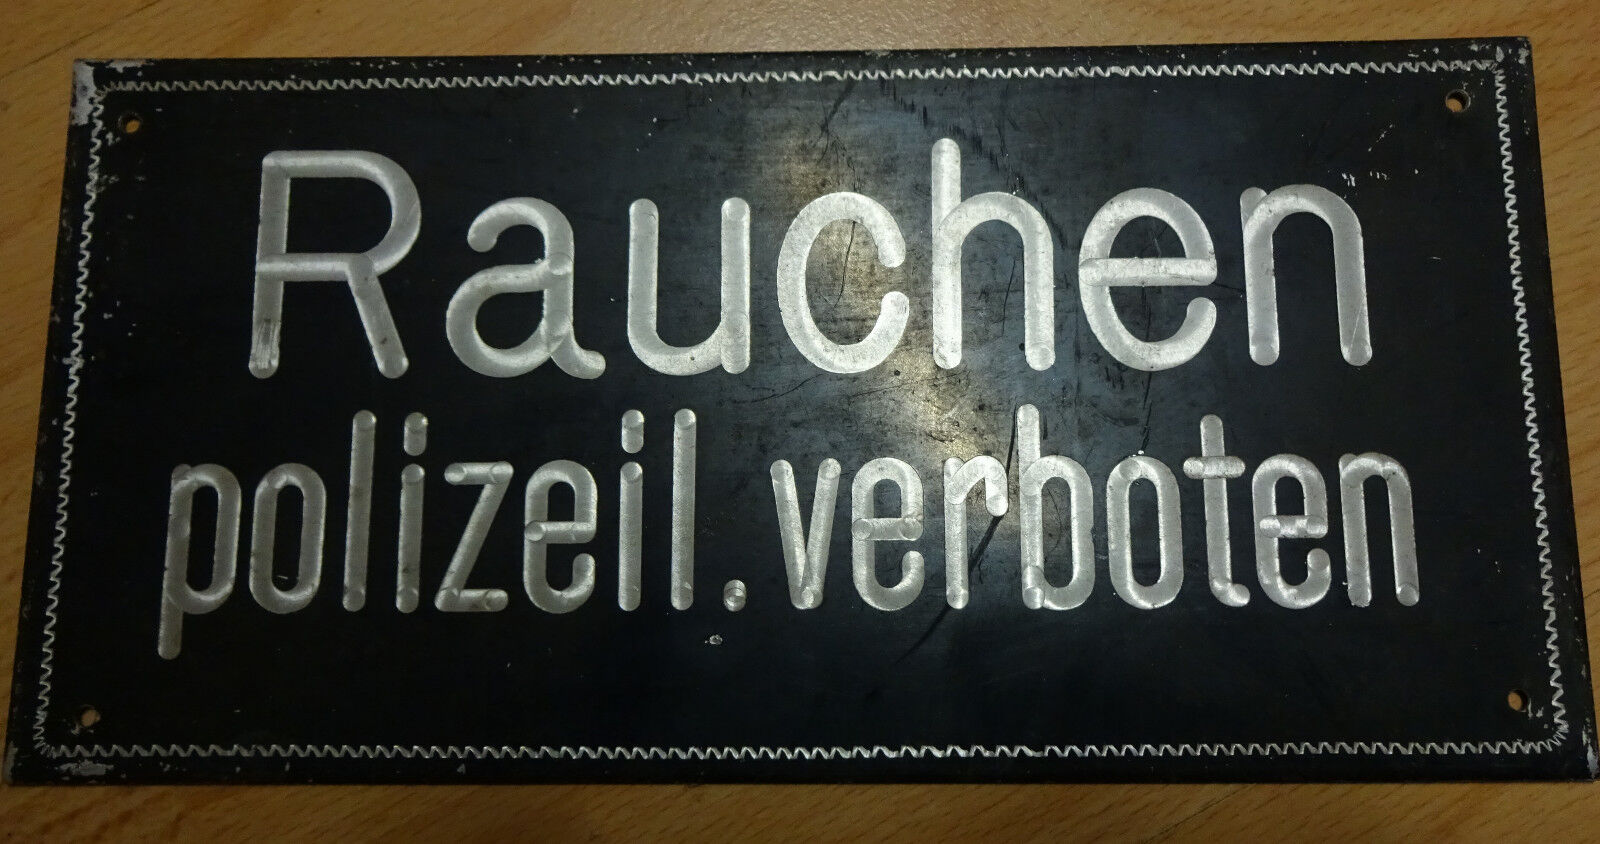 schild rauchen polizeilich verboten antik blechschild uralt kein emailleschild eur 2 00. Black Bedroom Furniture Sets. Home Design Ideas